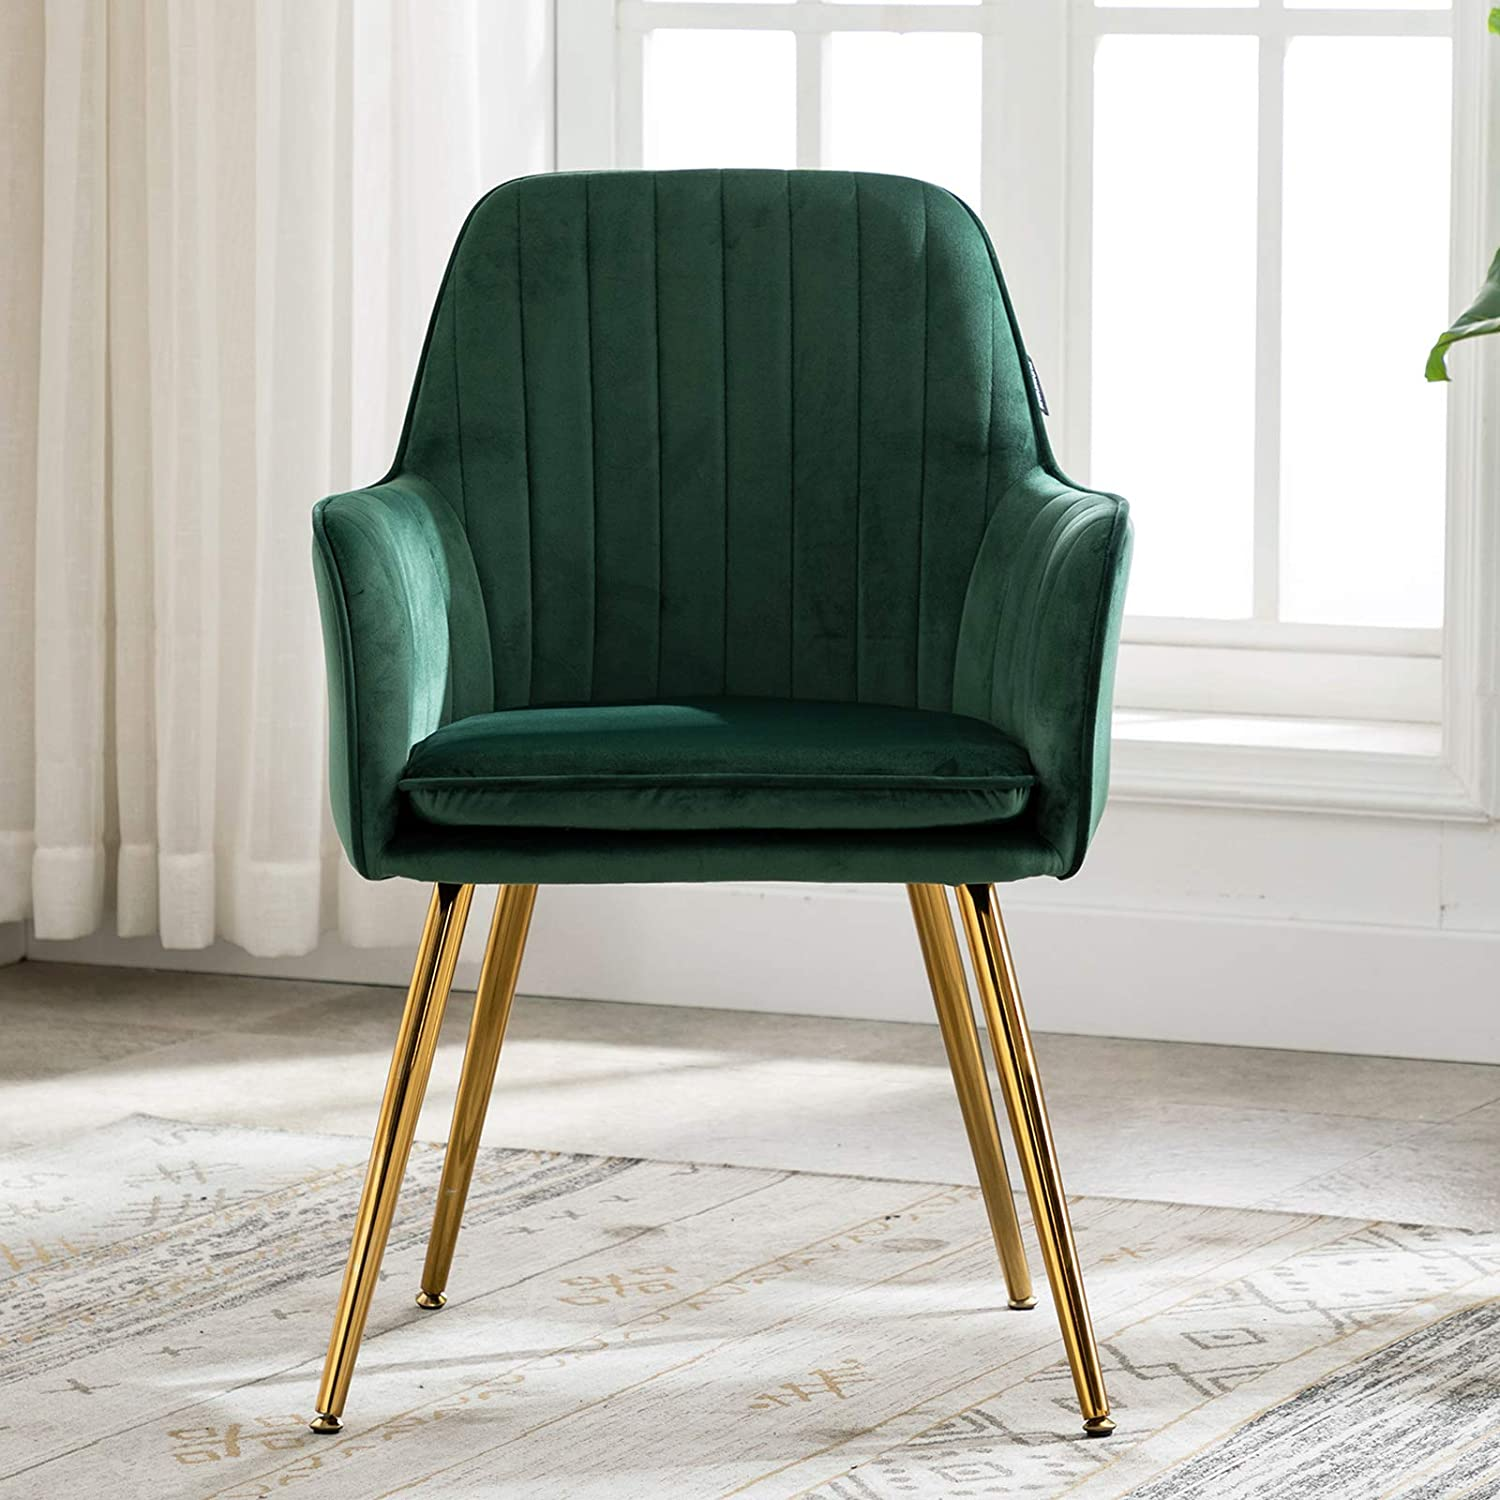 Artechworks Accent Living Dining Room Velvet Arm Chair Club Leisure Guest Lounge Bedroom Upholstered Chair with Gold Metal Legs, Green